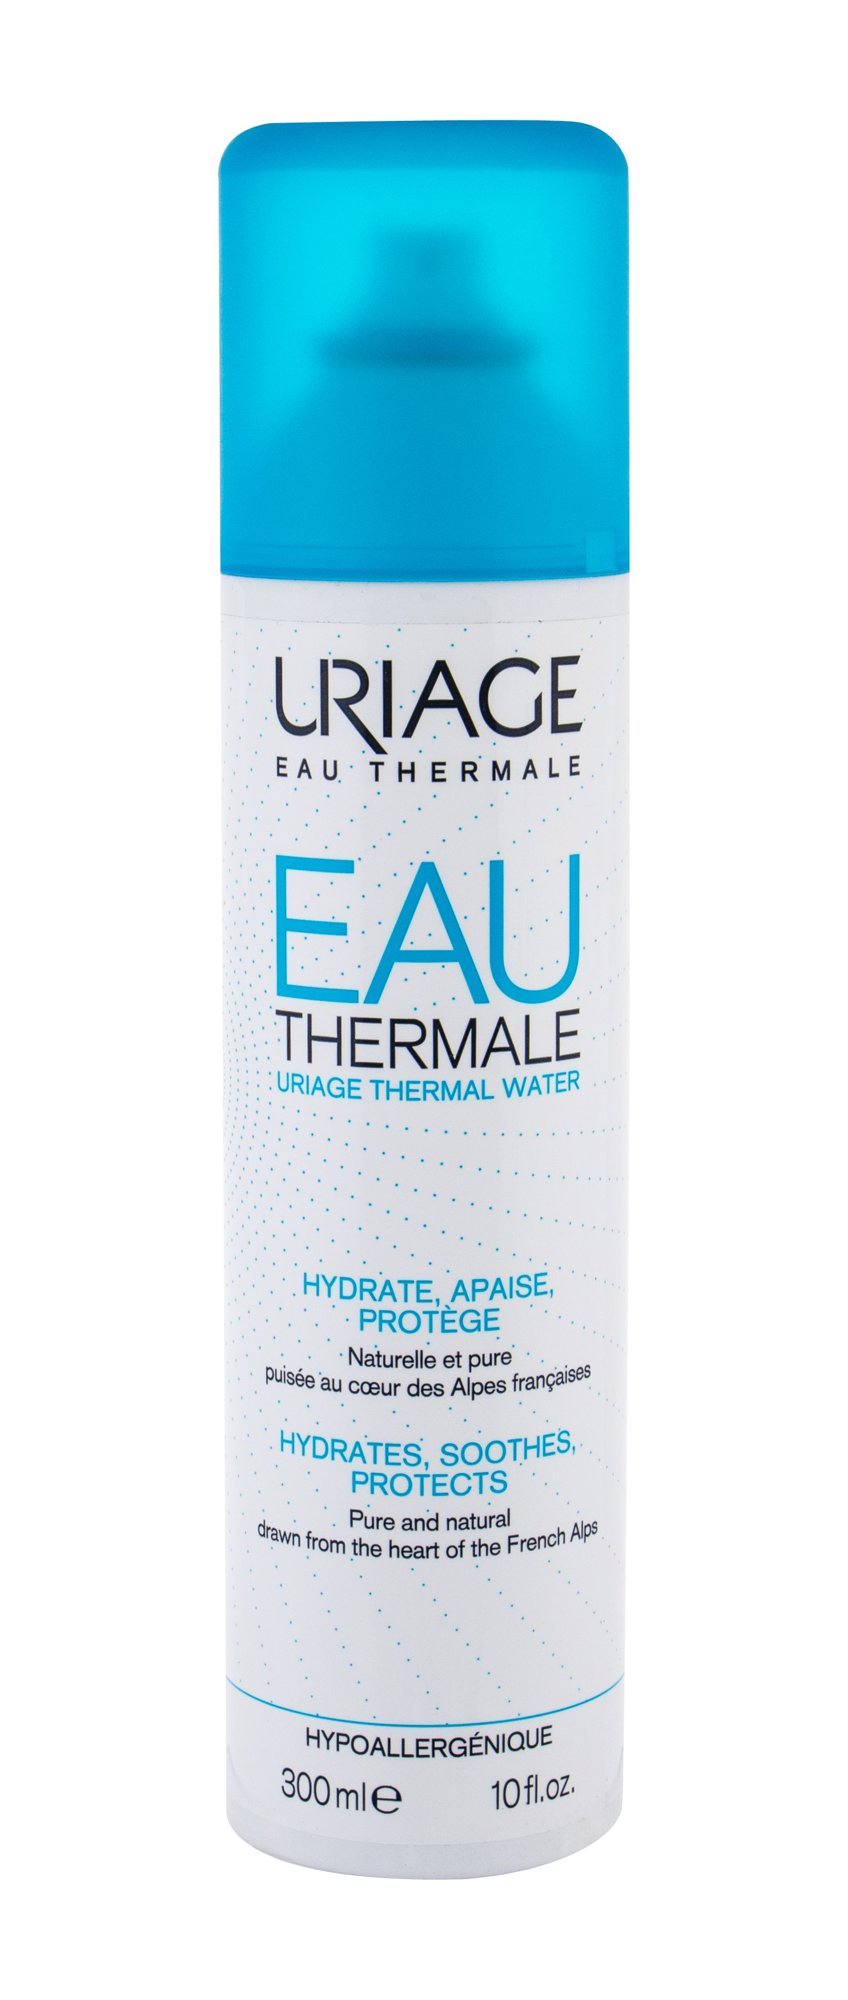 Uriage Eau Thermale Eau Thermale Facial Lotion and Spray 300ml